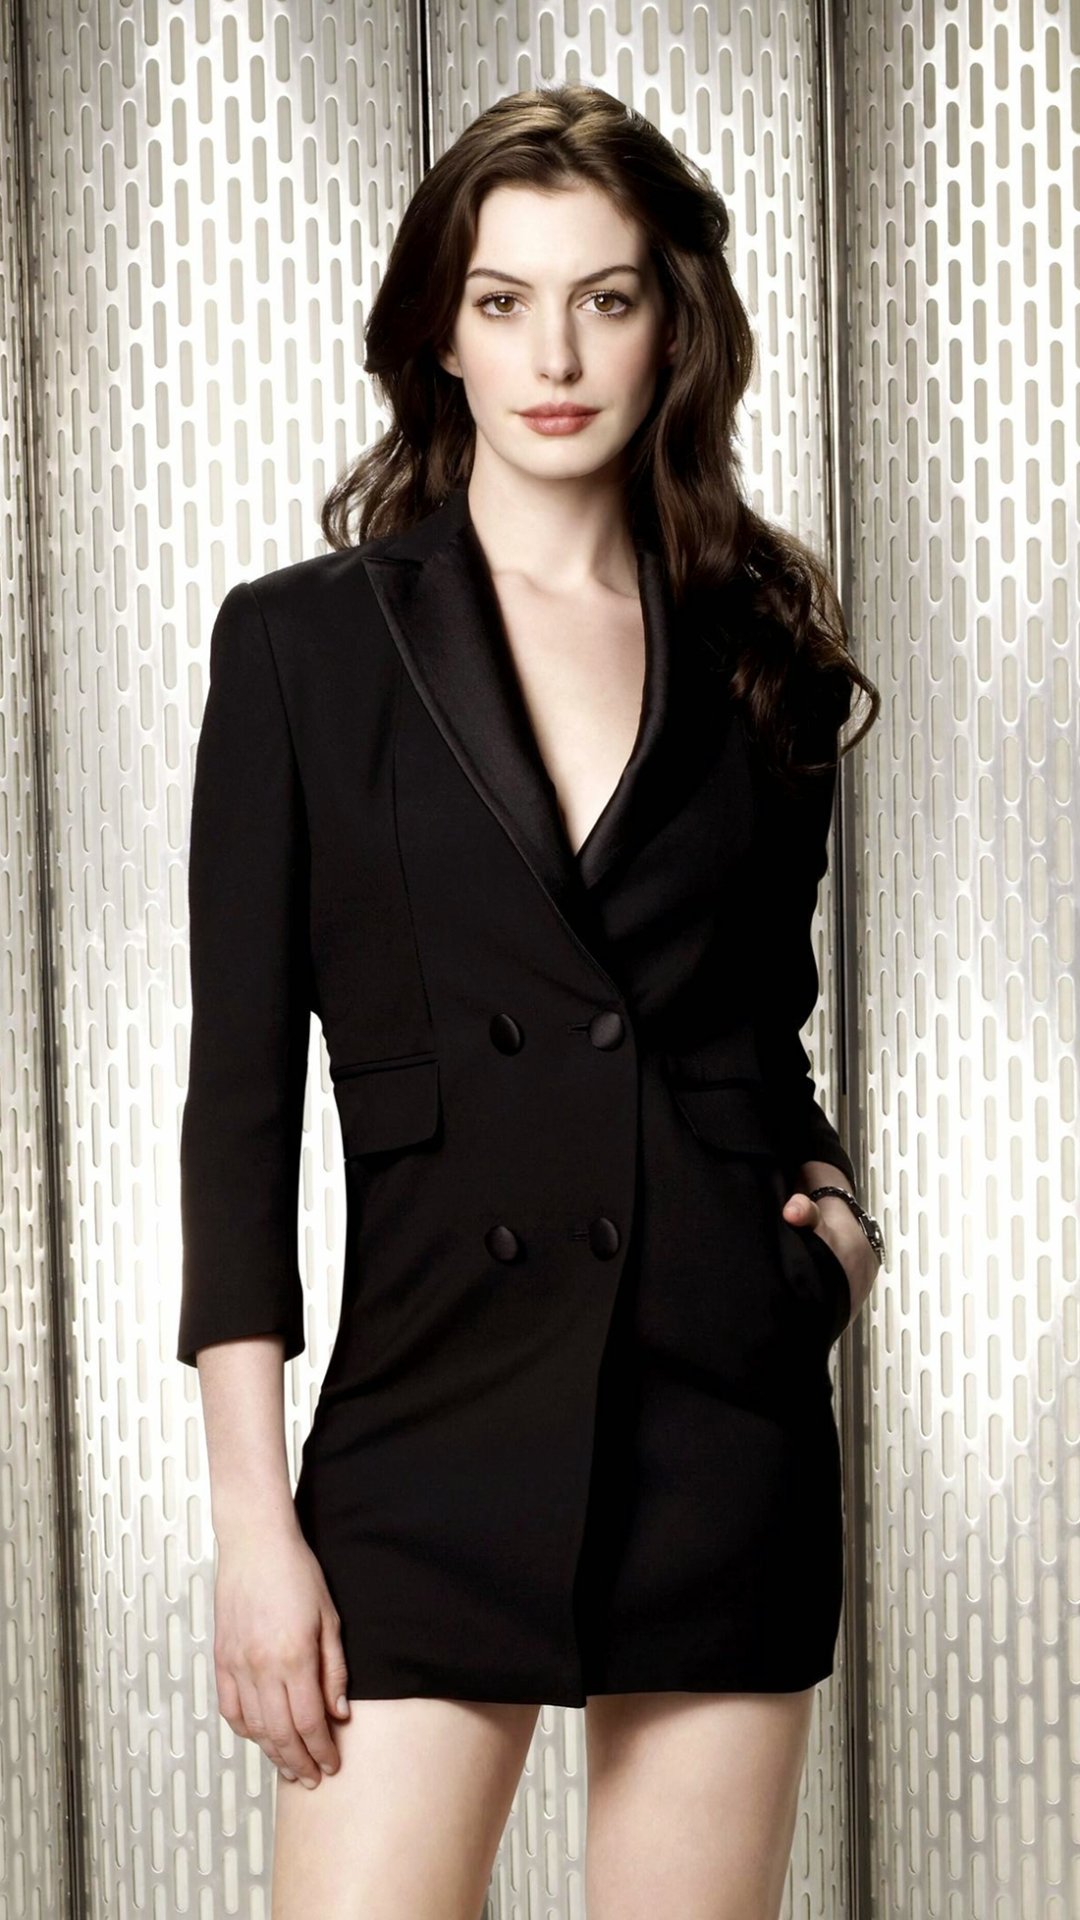 1080x1920 - Anne Hathaway Wallpapers 21